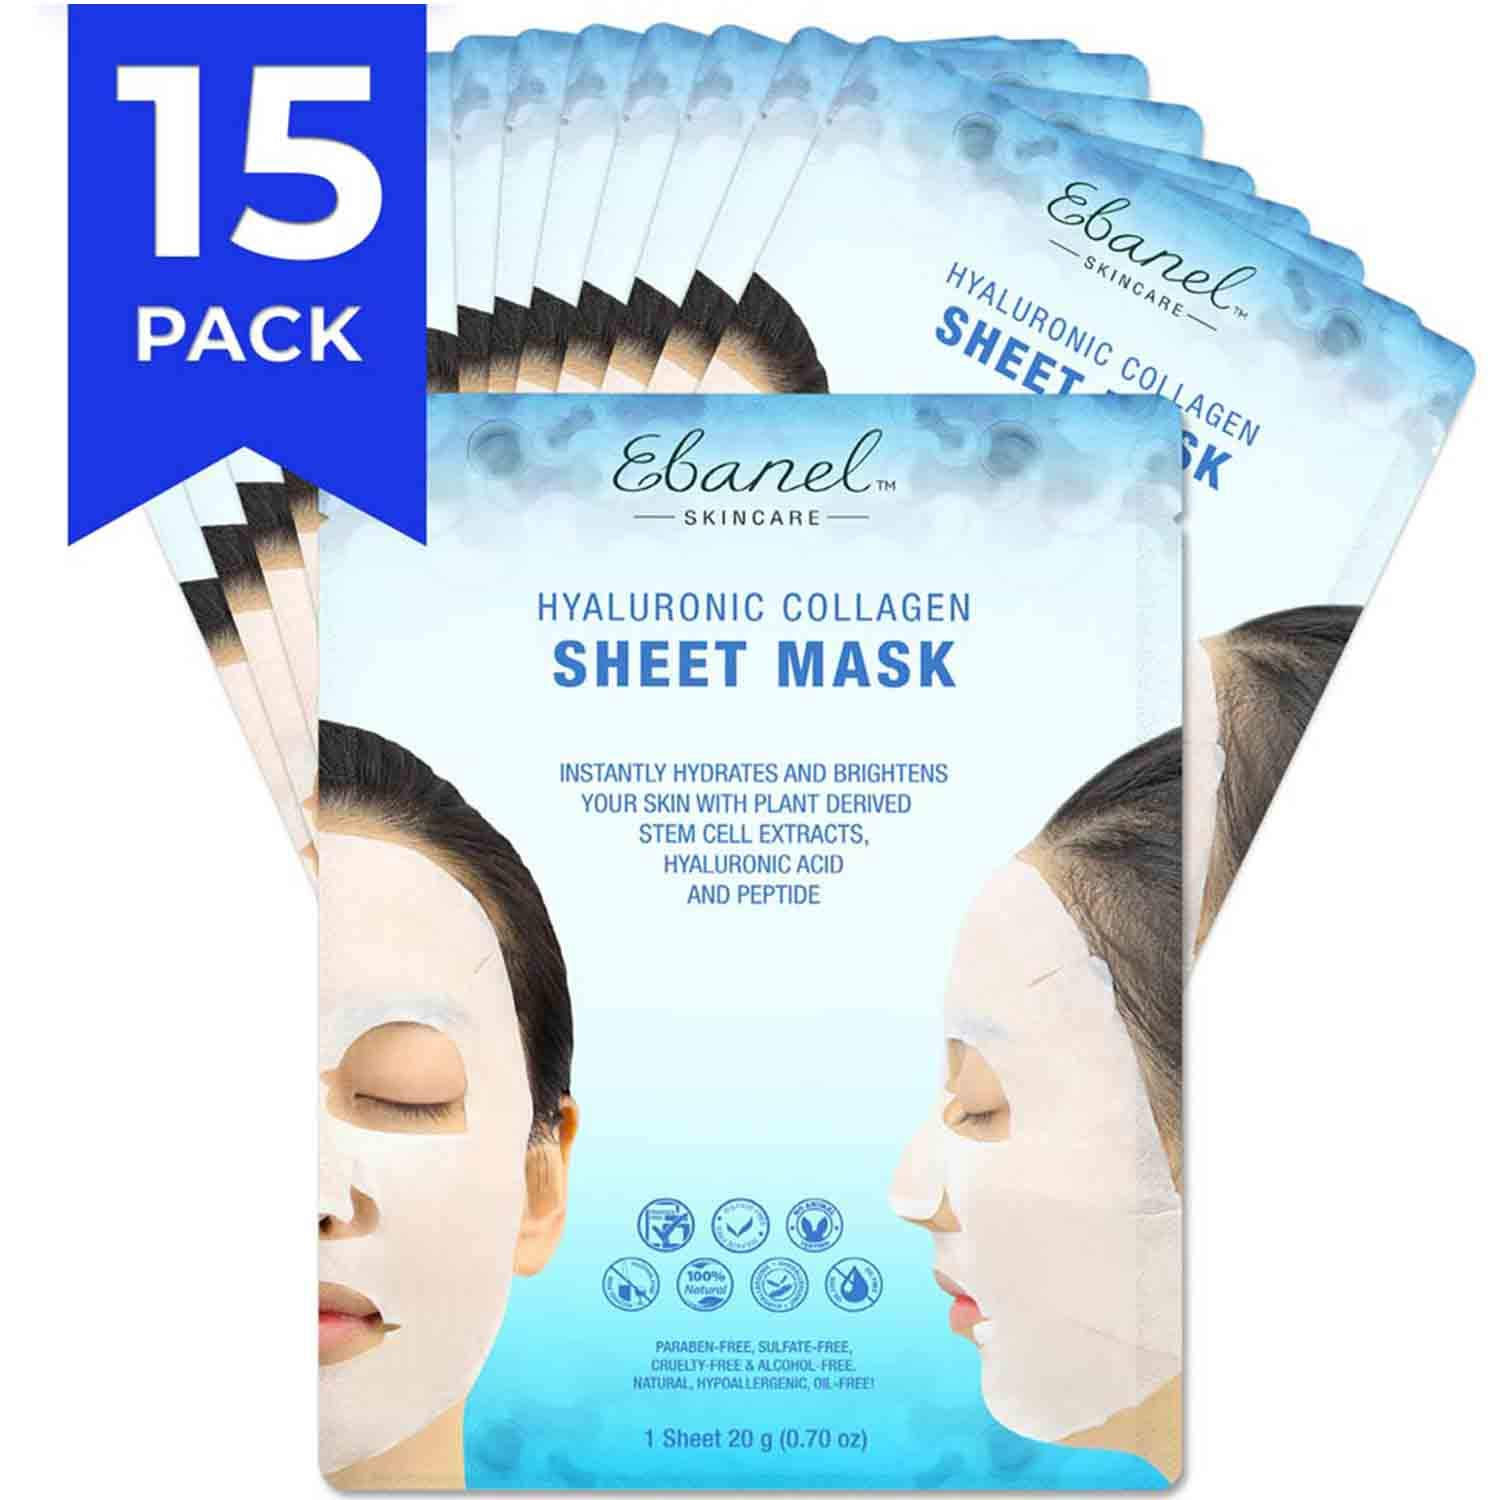 Ebanel Korean Collagen Facial Face Mask Sheet, 15 Pack, Instant Brightening and Hydrating, Deep Moisturizing with Hyaluronic Acid Face Masks, Anti-Aging Anti-Wrinkle with Stem Cell Extracts, Peptide by Ebanel Laboratories